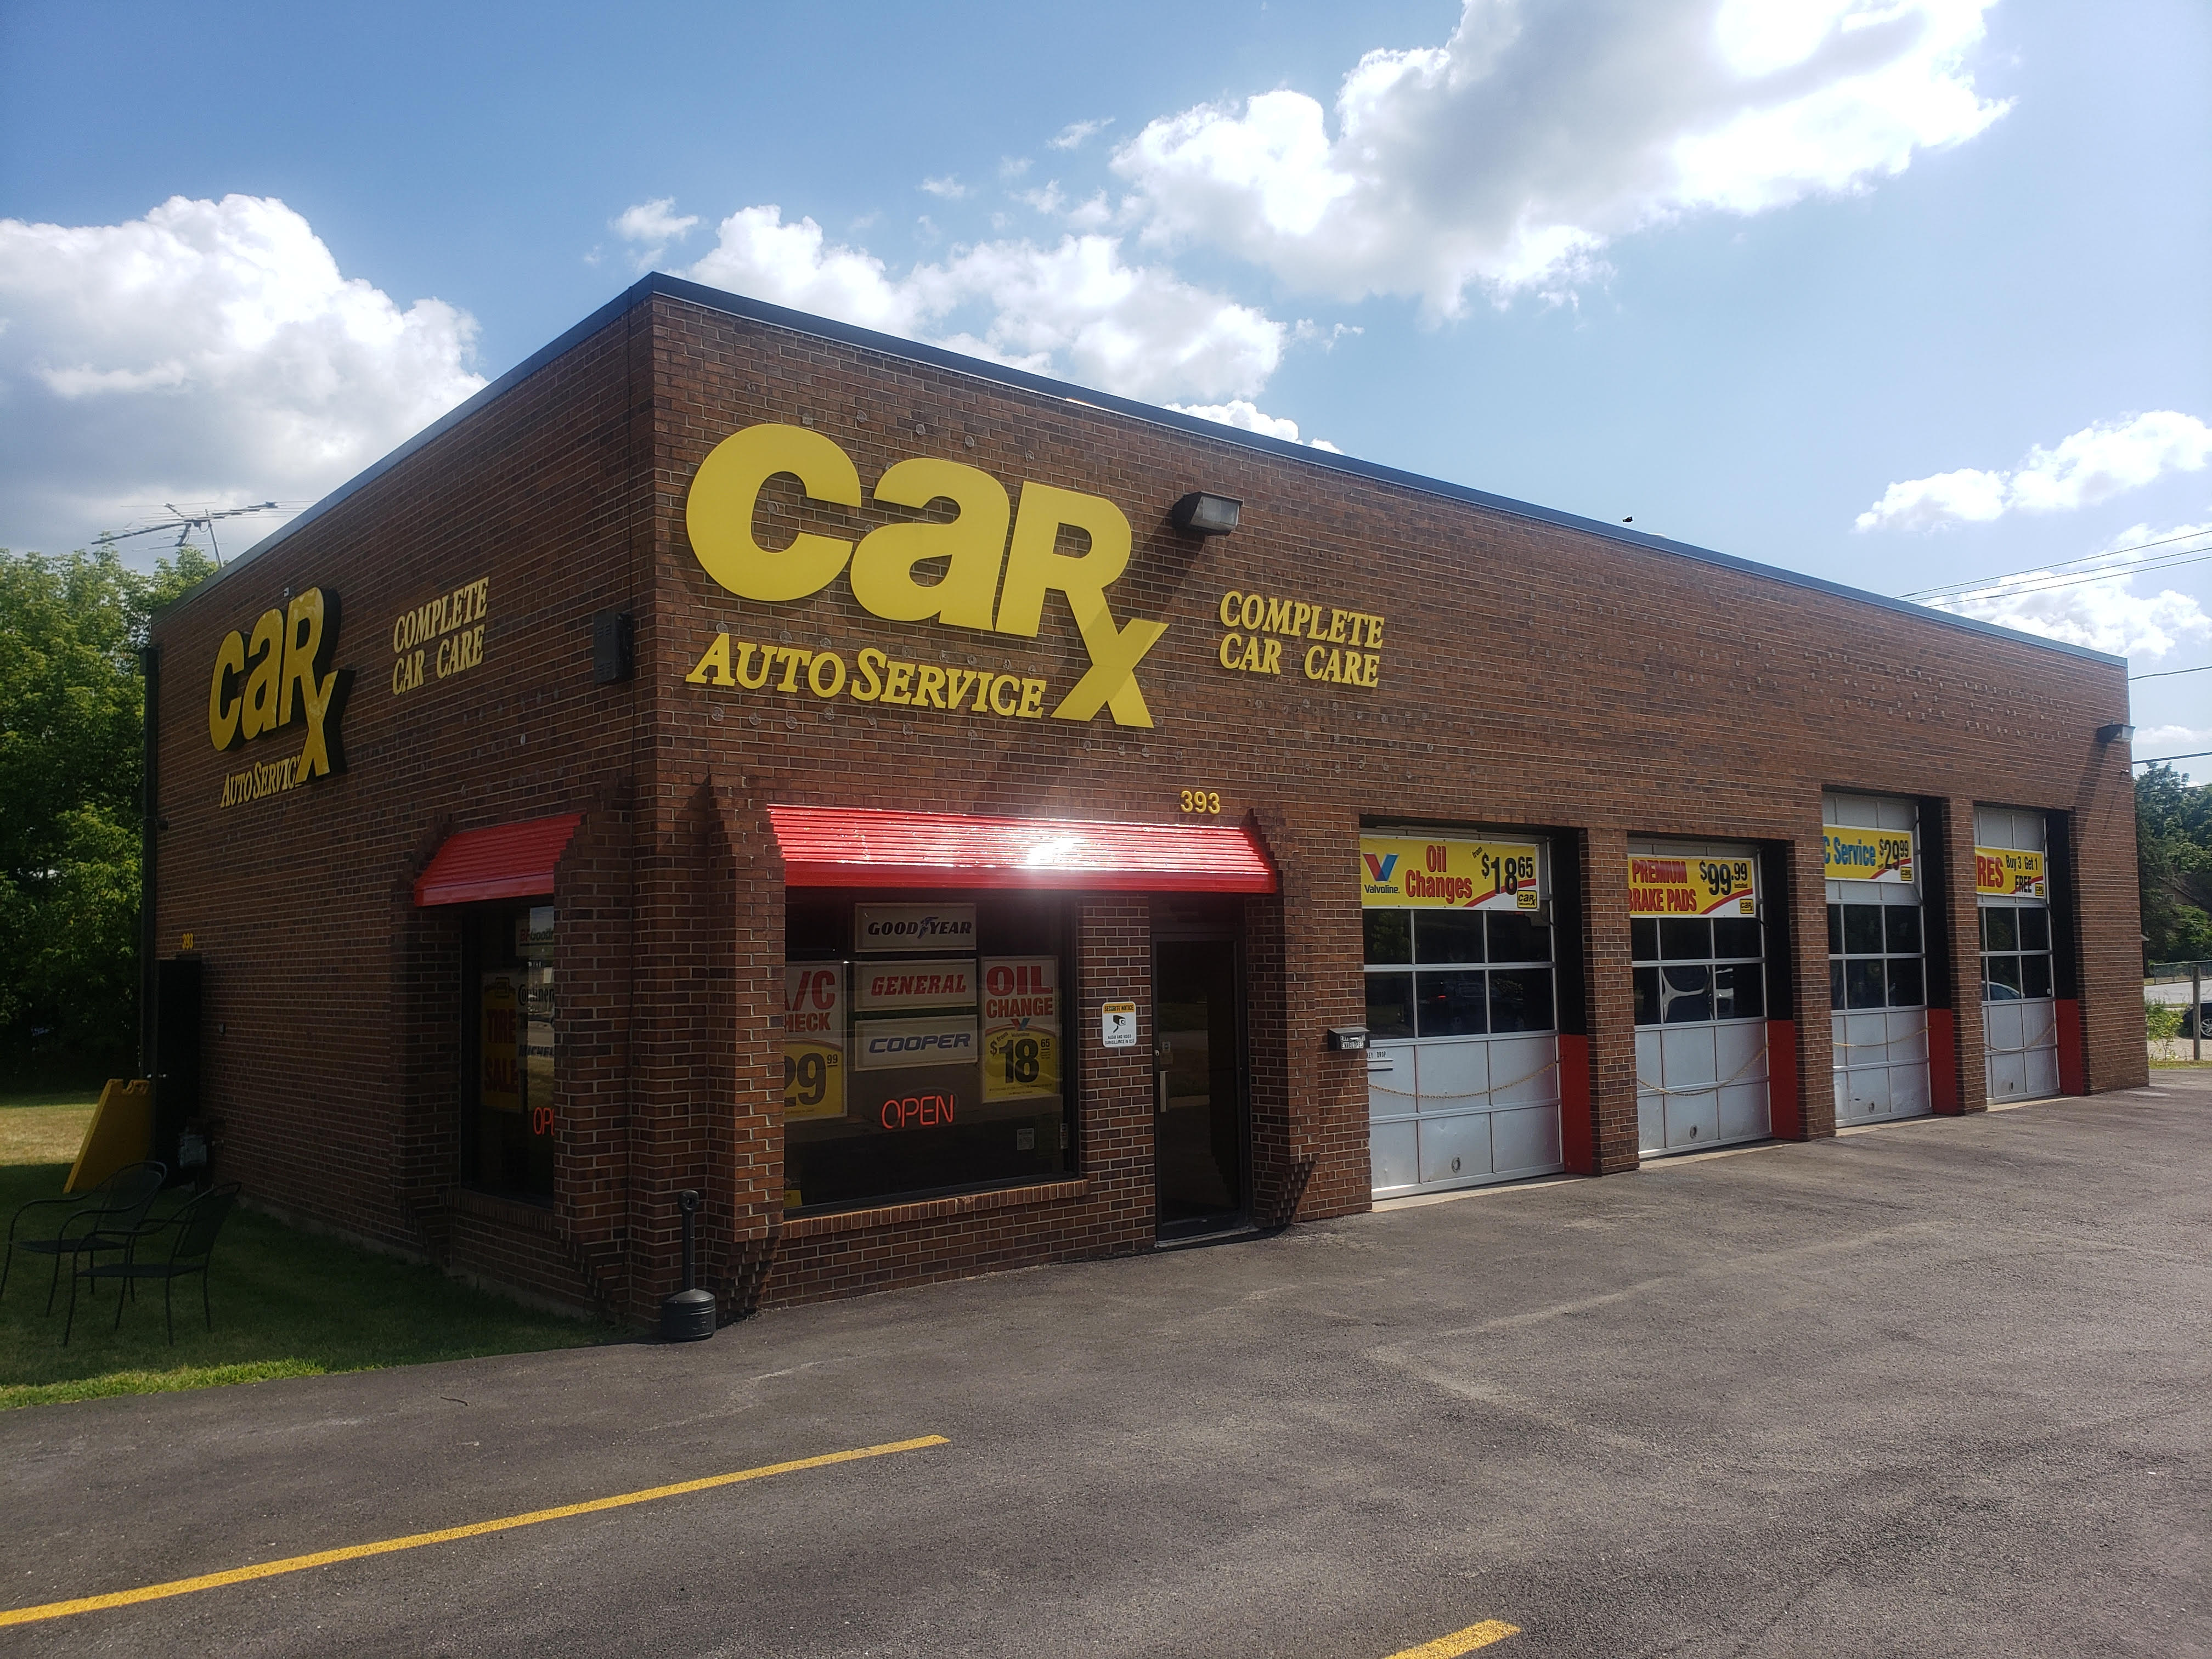 Auto Repair Crystal Lake IL, Brakes Crystal Lake IL, Oil Change Crystal Lake IL, Tires Crystal Lake IL